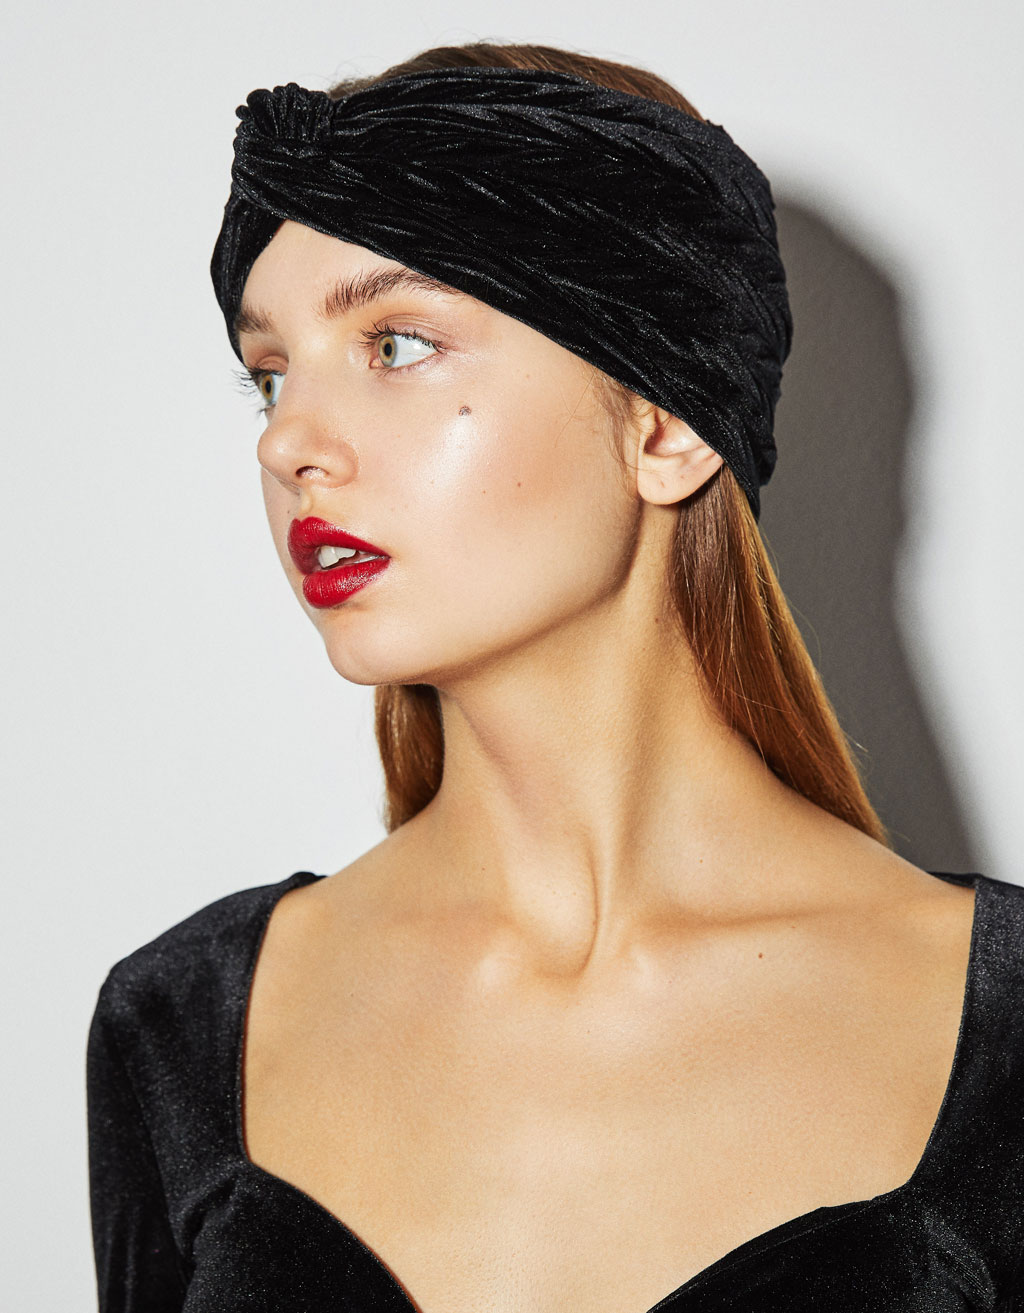 Velvet Turban Style Headband With Plaited Effect by Bershka